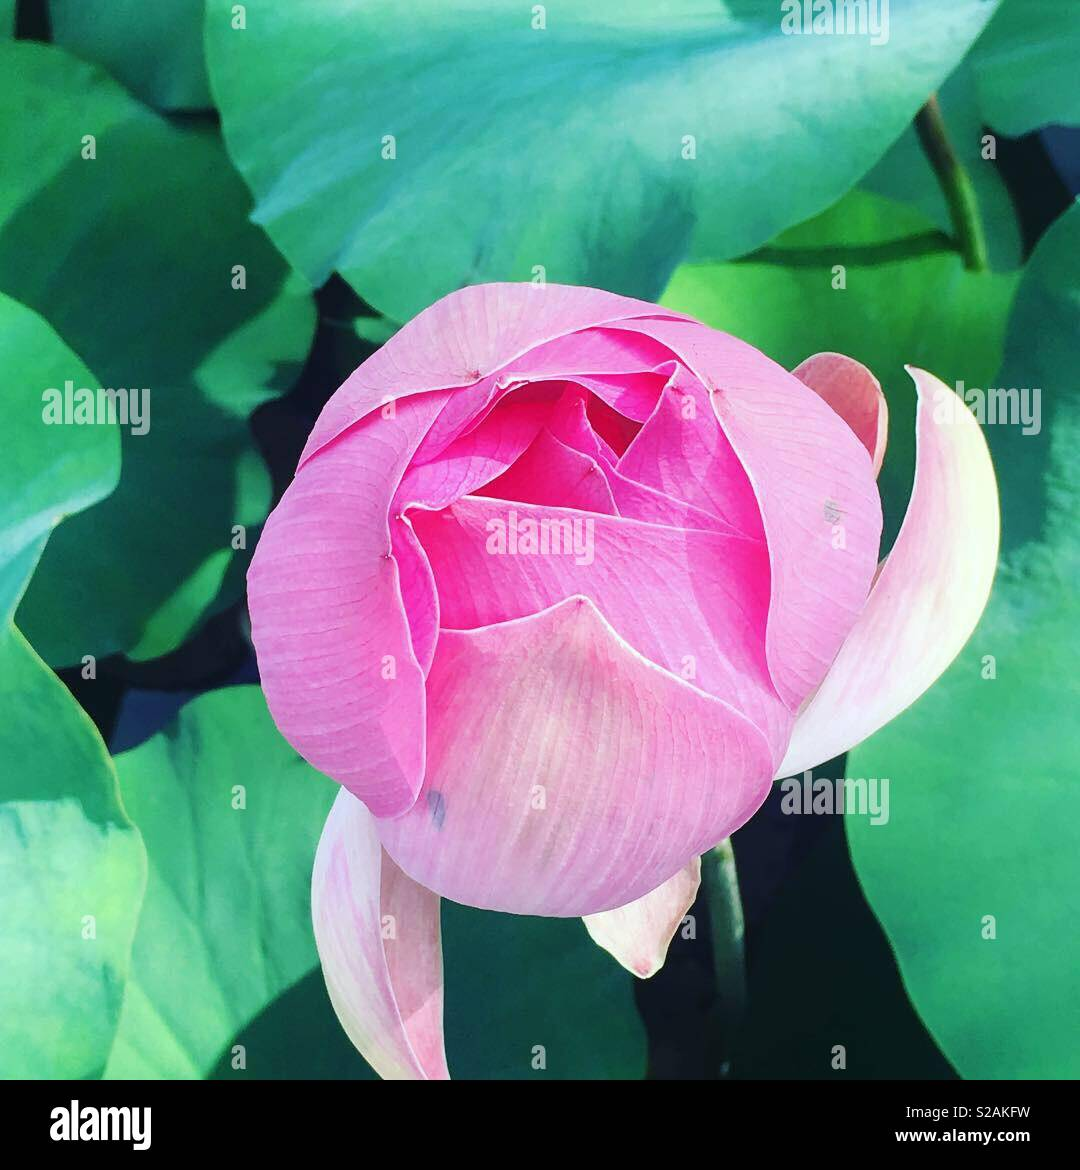 Magnifique open flower lotus flower stock photo 311250797 alamy magnifique open flower lotus flower izmirmasajfo